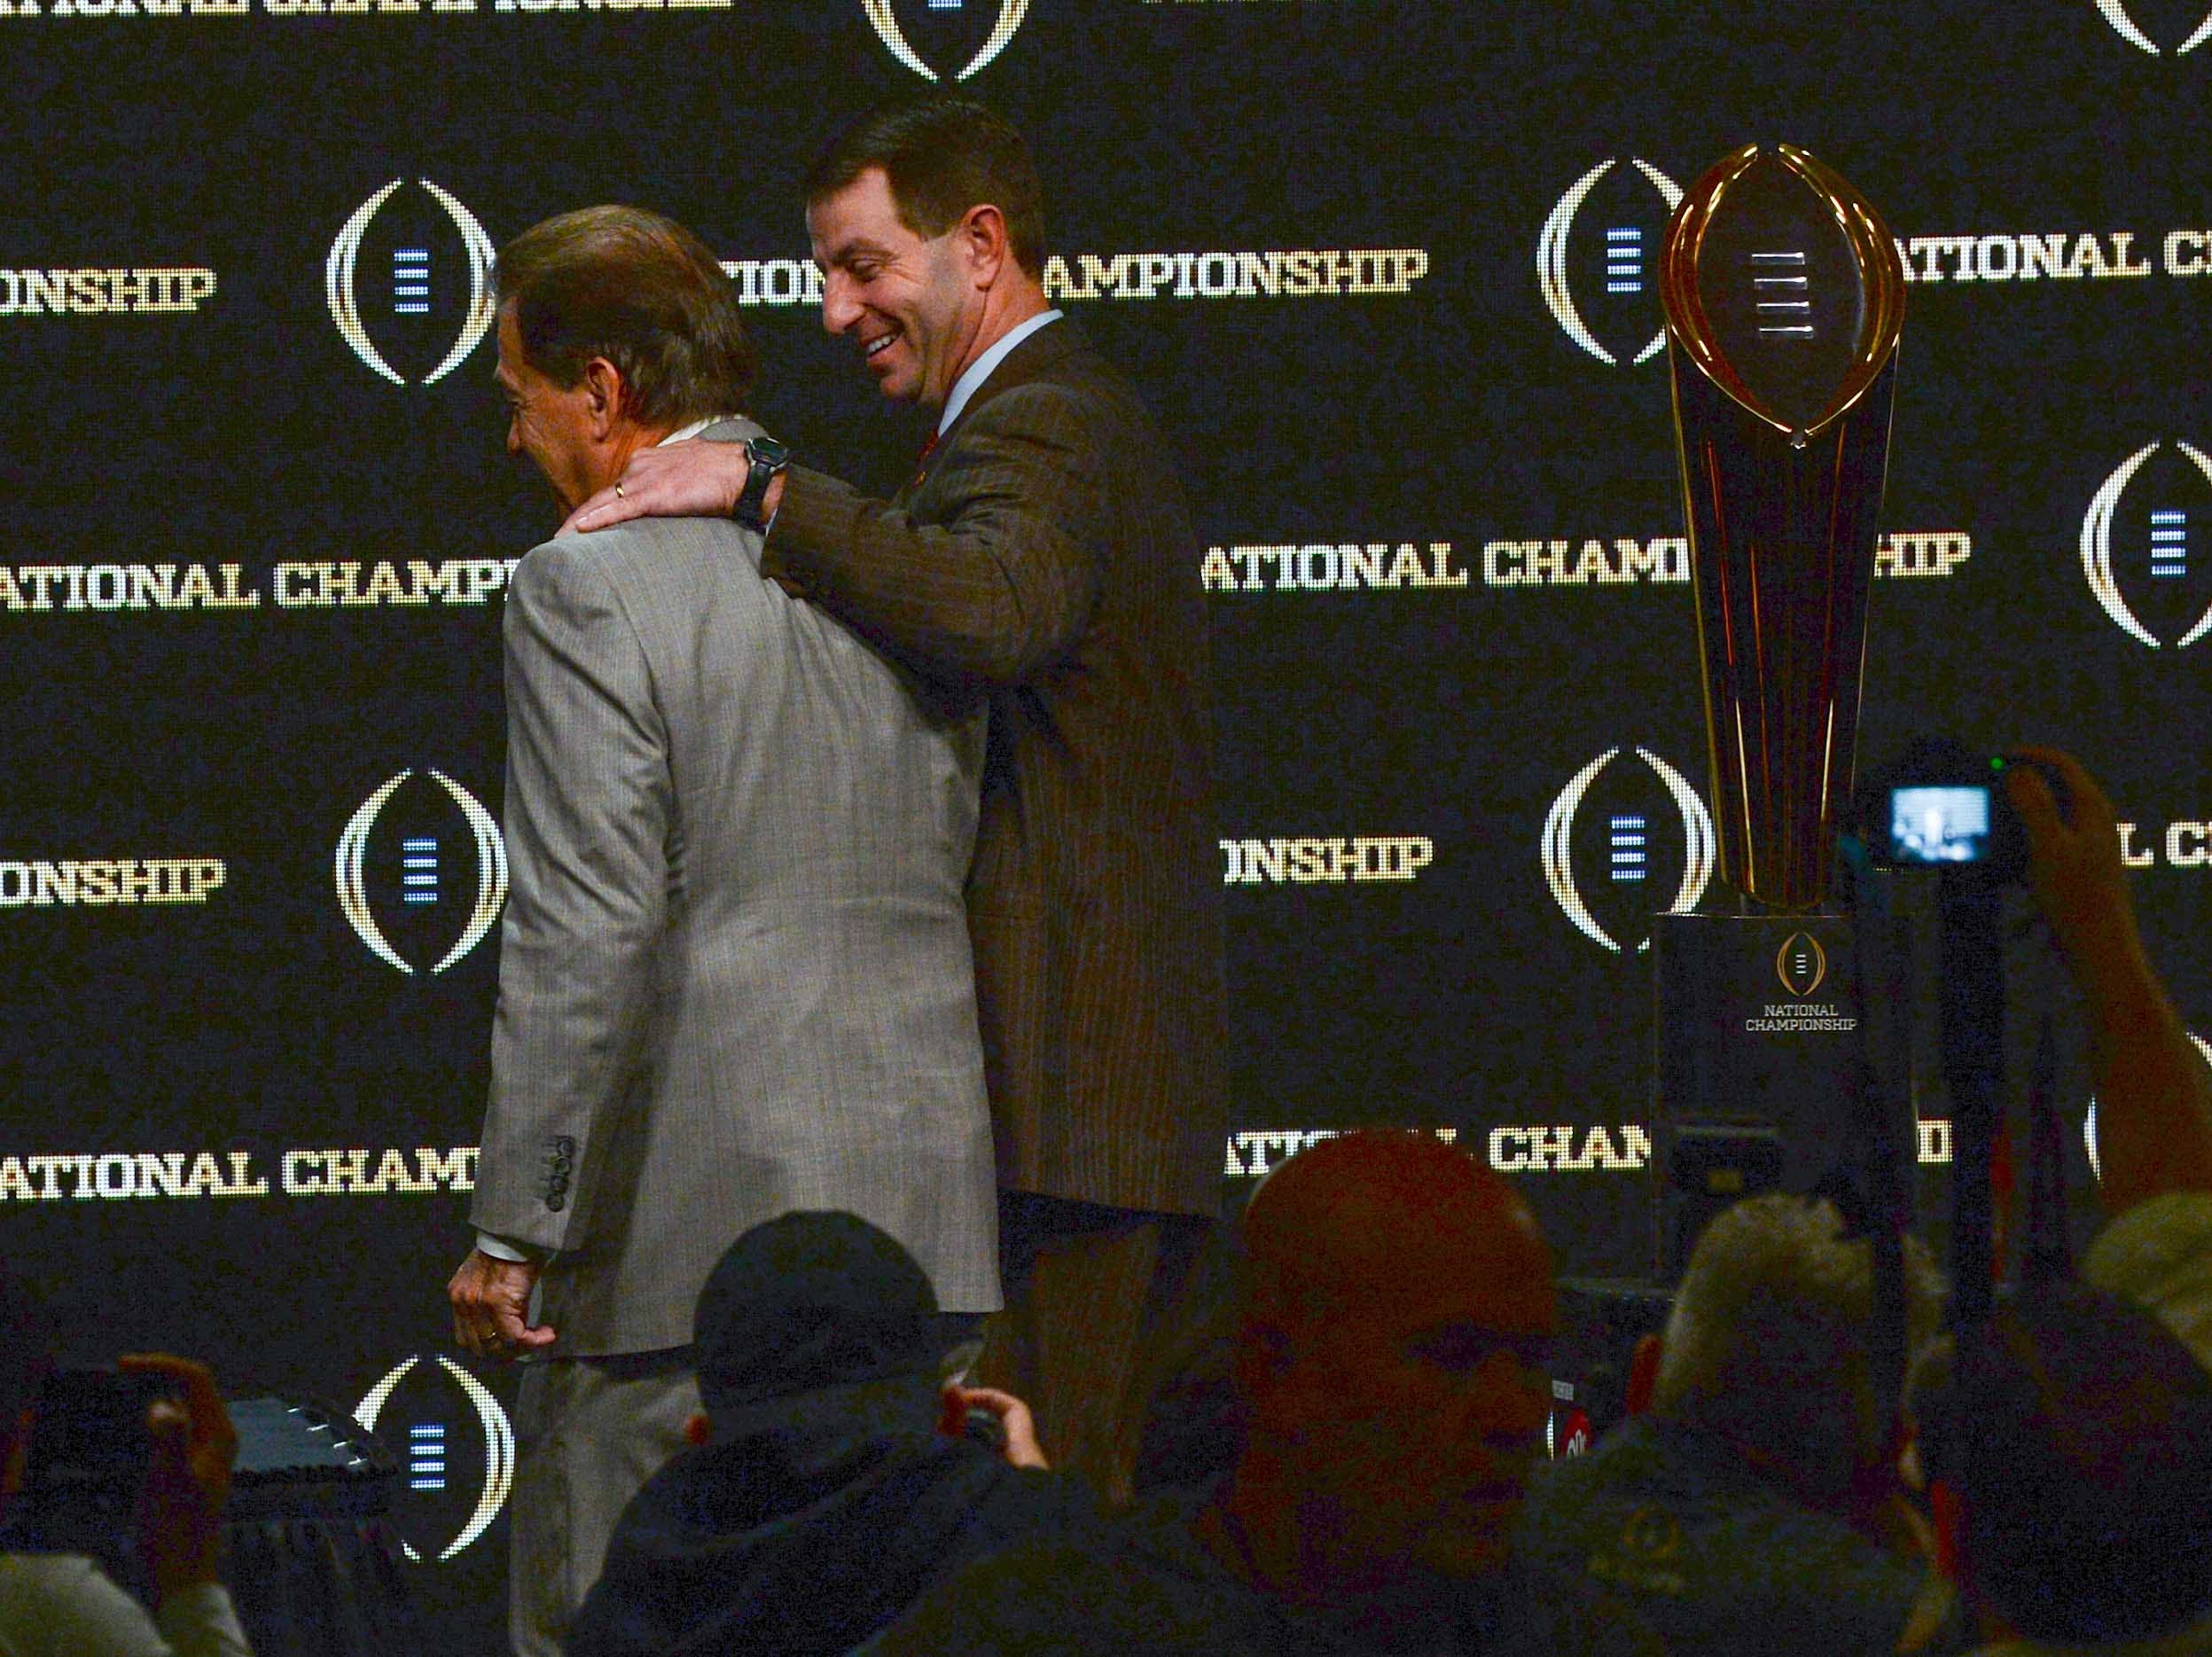 Alabama coach Nick Saban, left, and Clemson Head Coach Dabo Swinney walk off stage together after posing with the championship trophy during the College Football Playoff Championship coaches press conference in San Jose, California January 6, 2019.